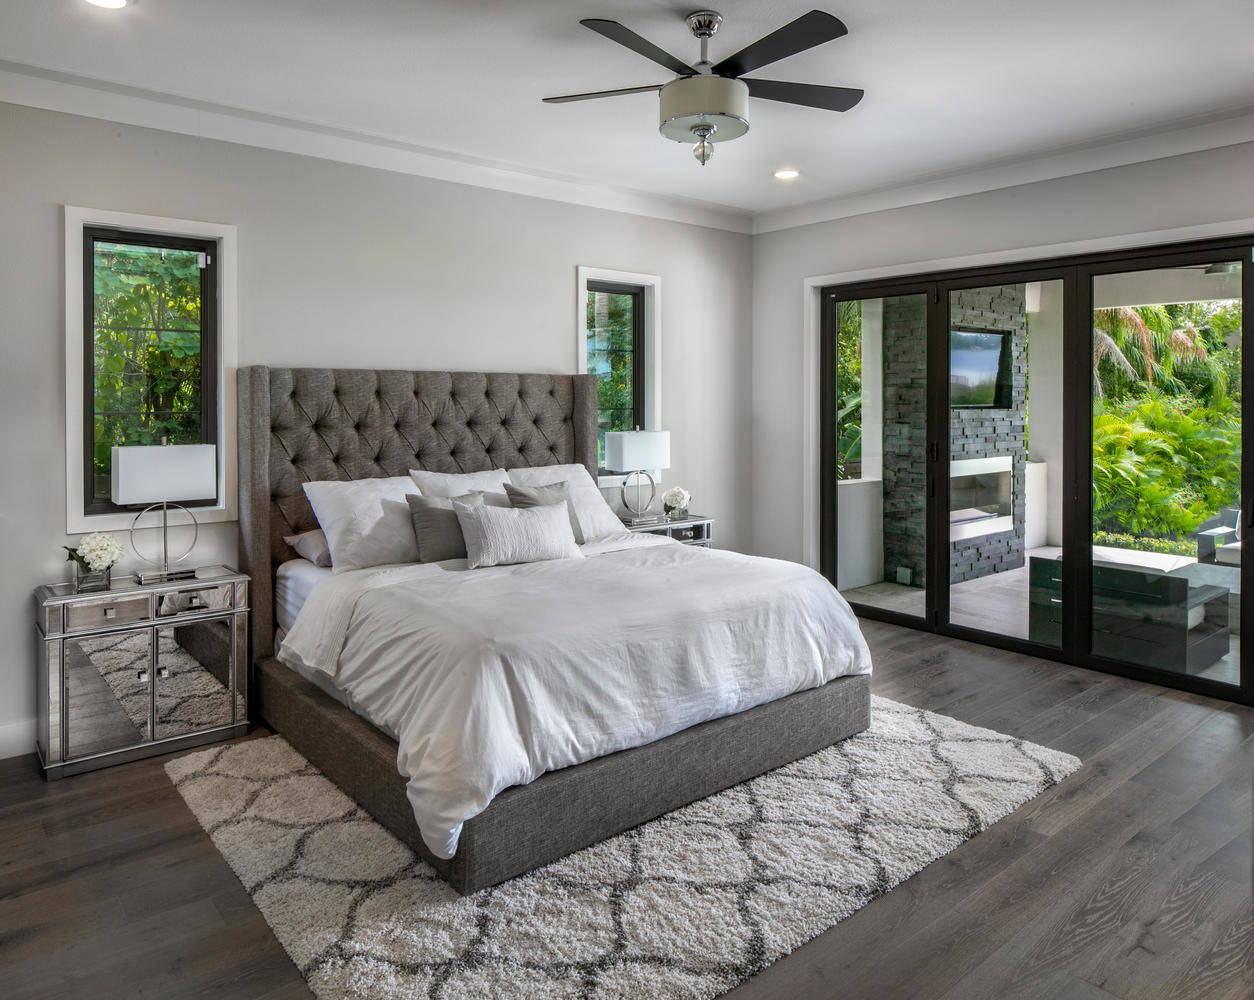 75 Beautiful Modern Master Bedroom Pictures Ideas November 2020 Houzz